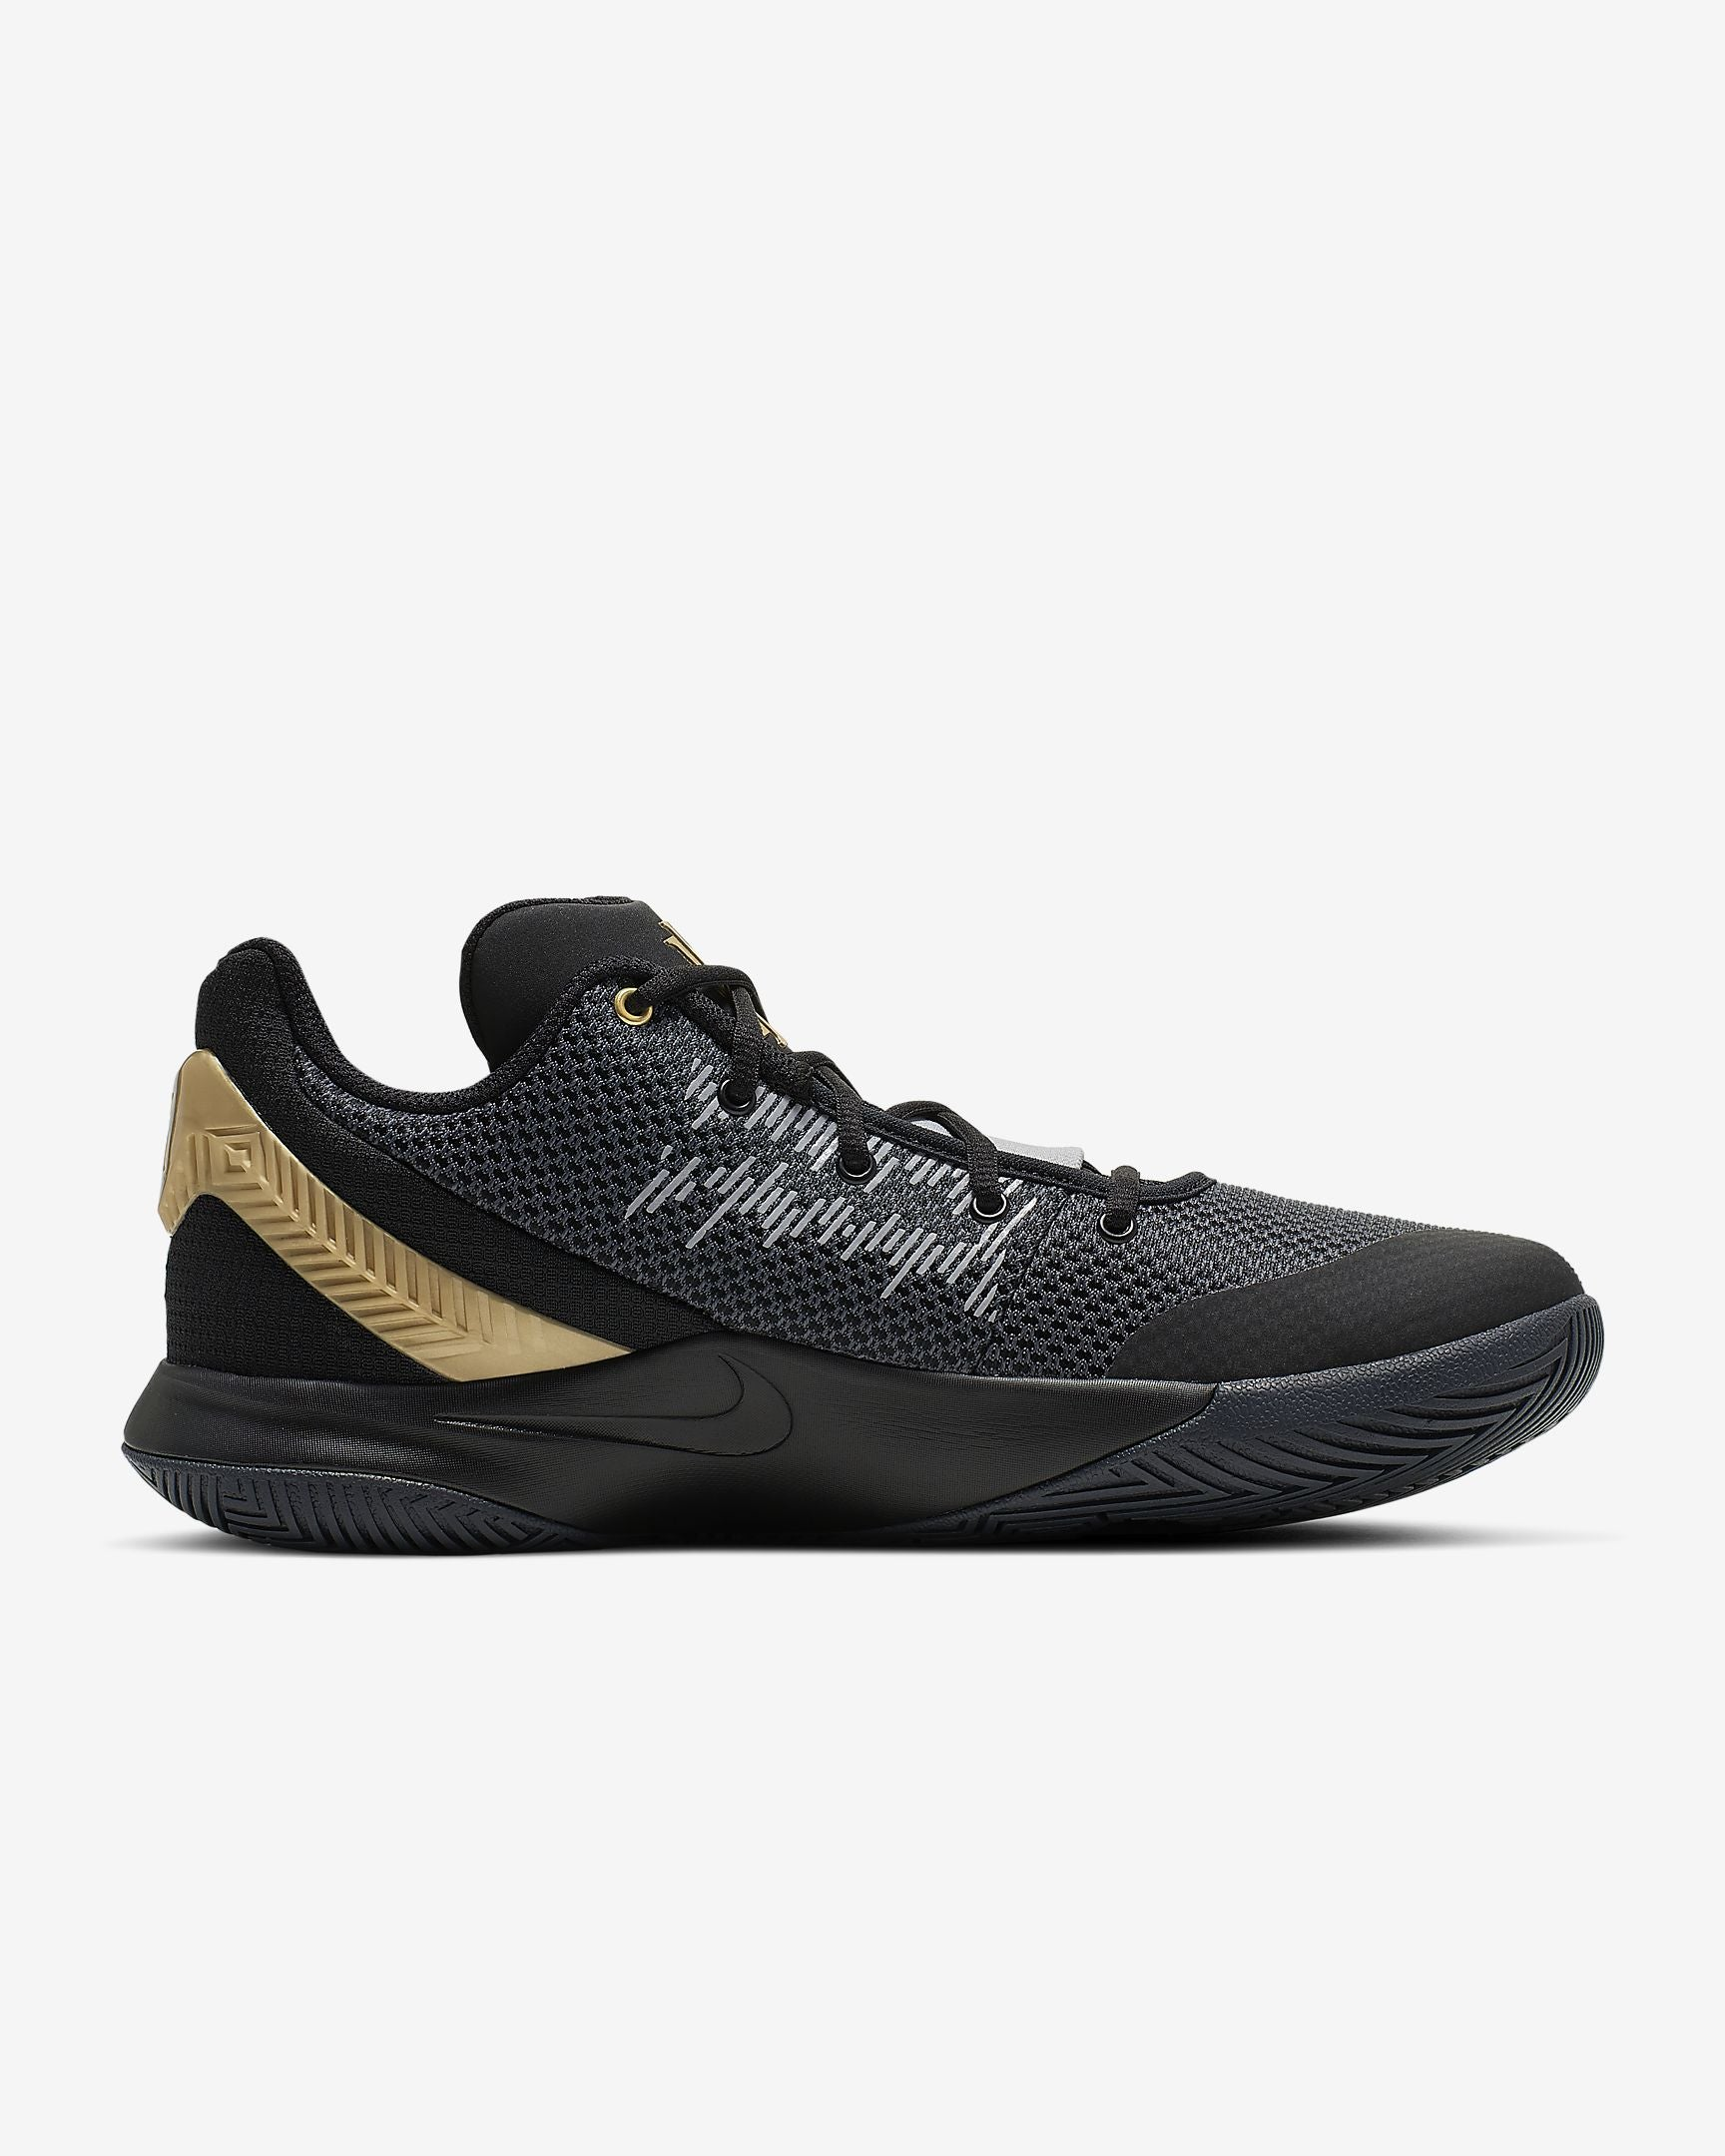 Nike Kyrie Flytrap II  Basketball Boot/Shoe - Black/Metallic Gold/Anthracite